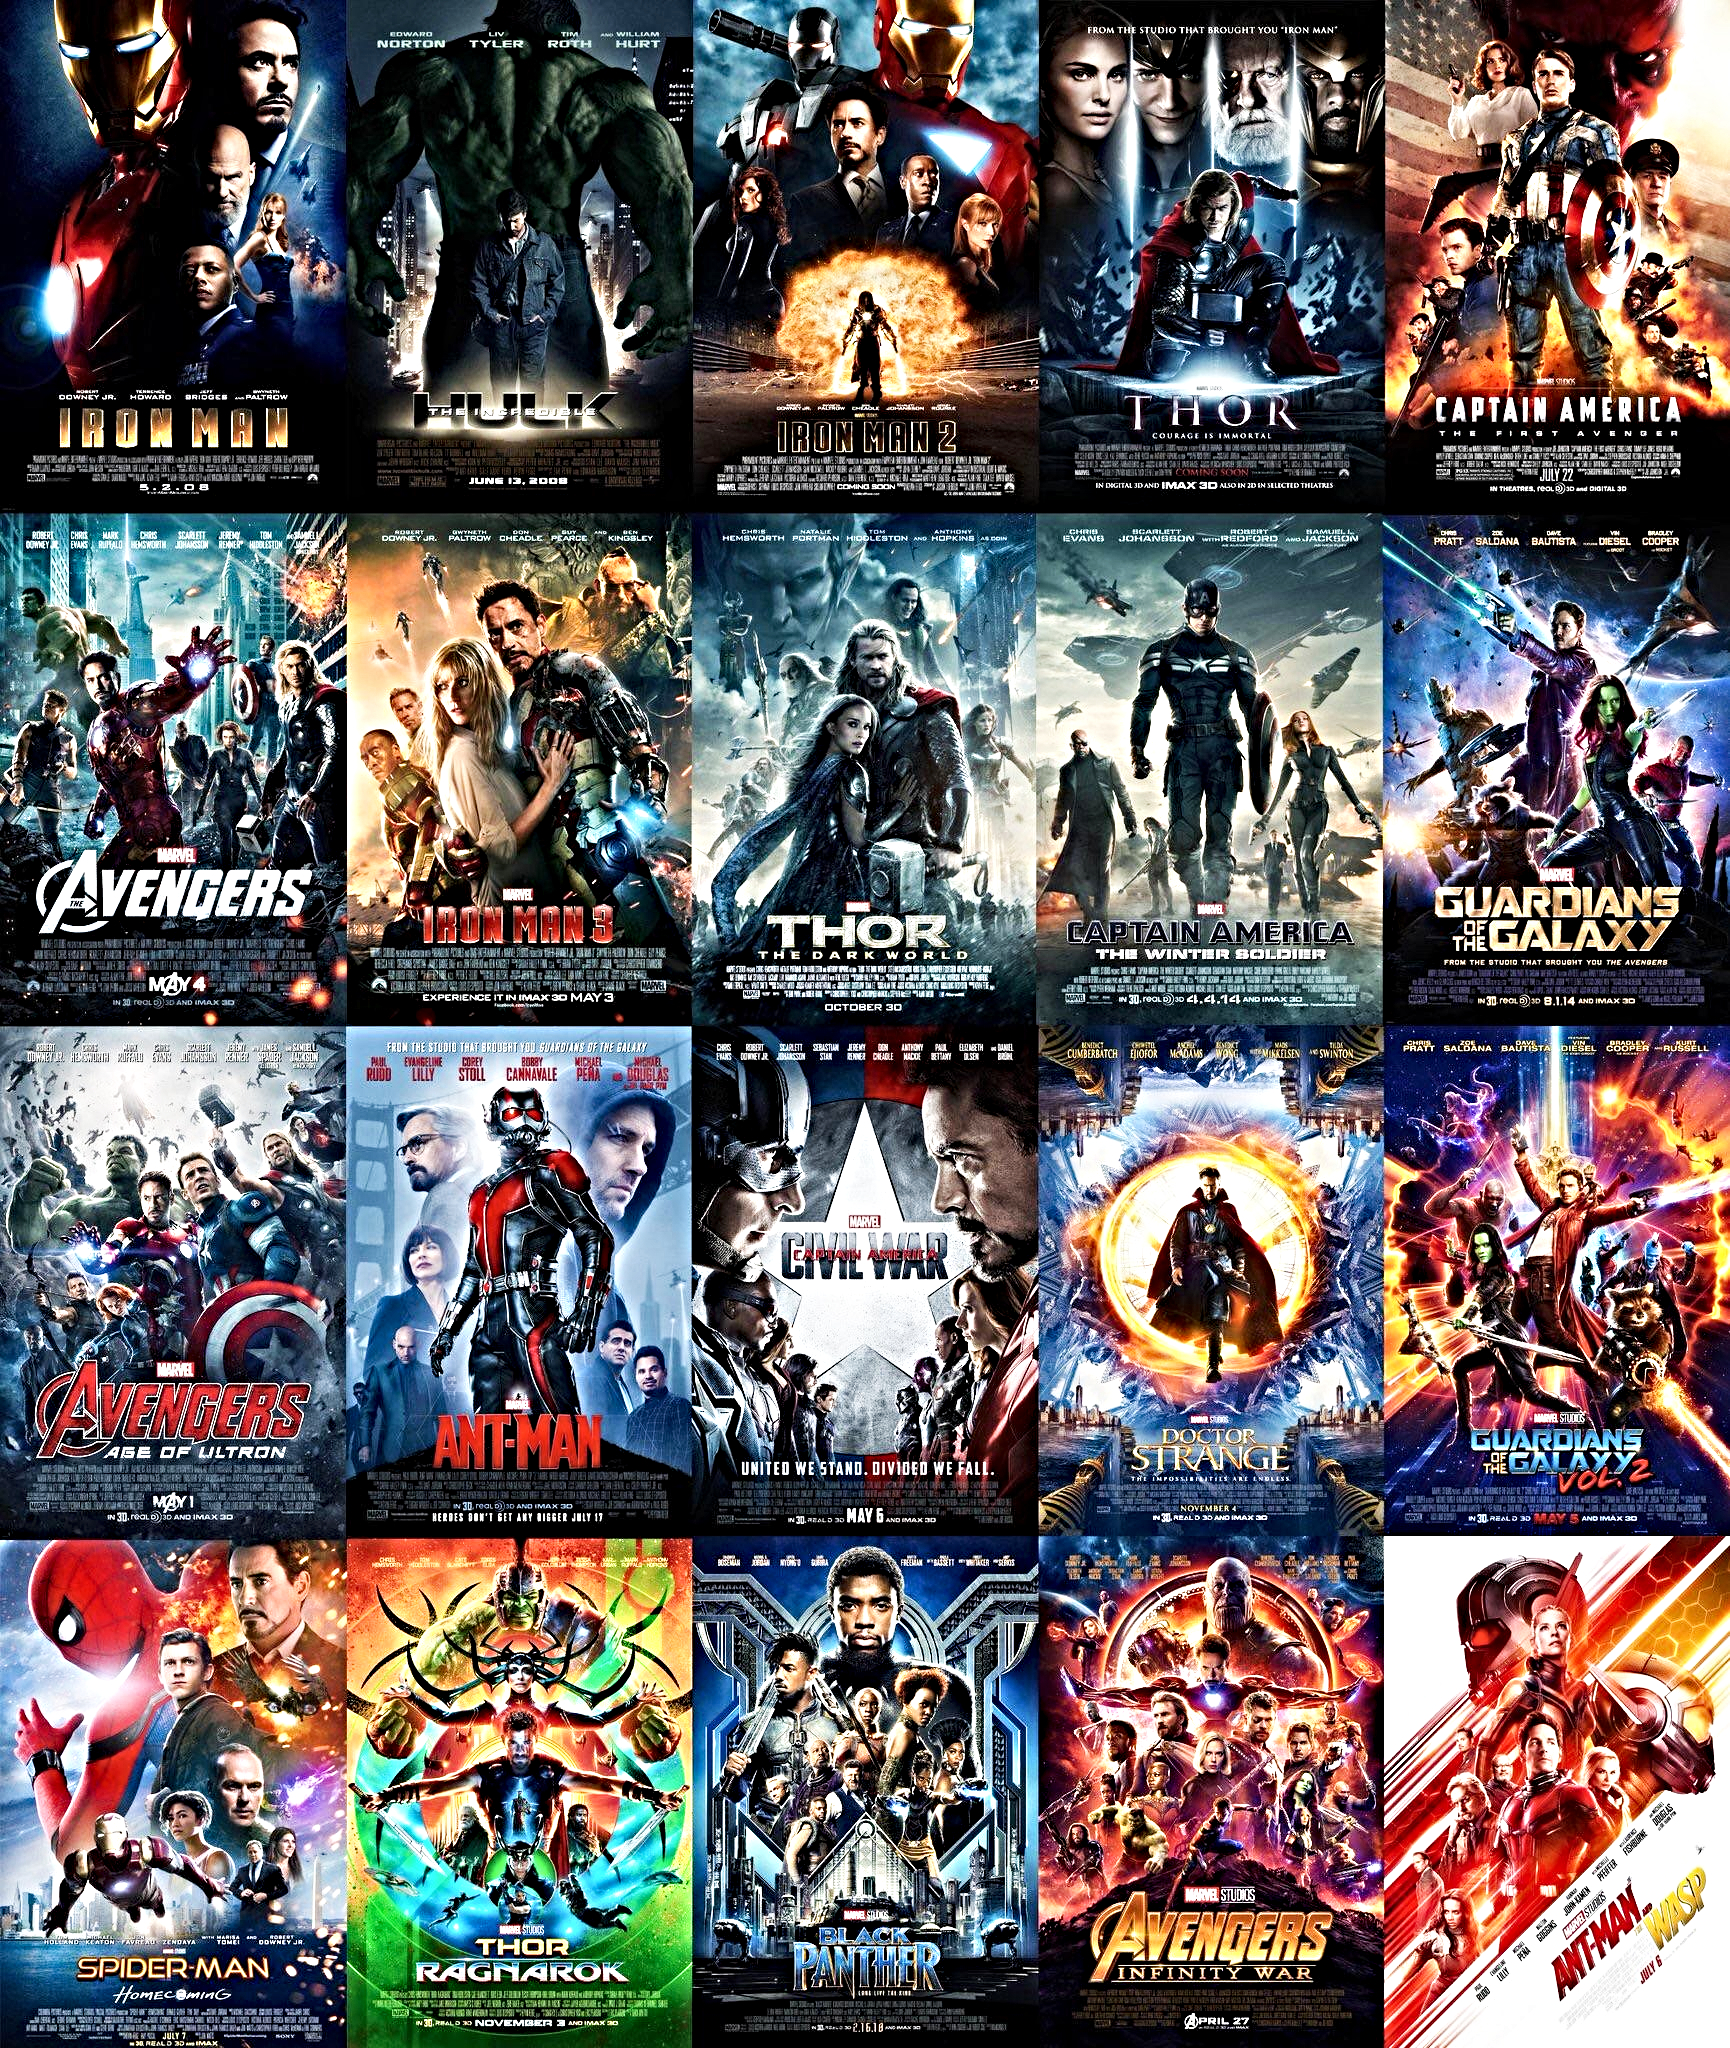 List: The Longest Marvel Movie Run Times for All 23 MCU Films (By Mins)